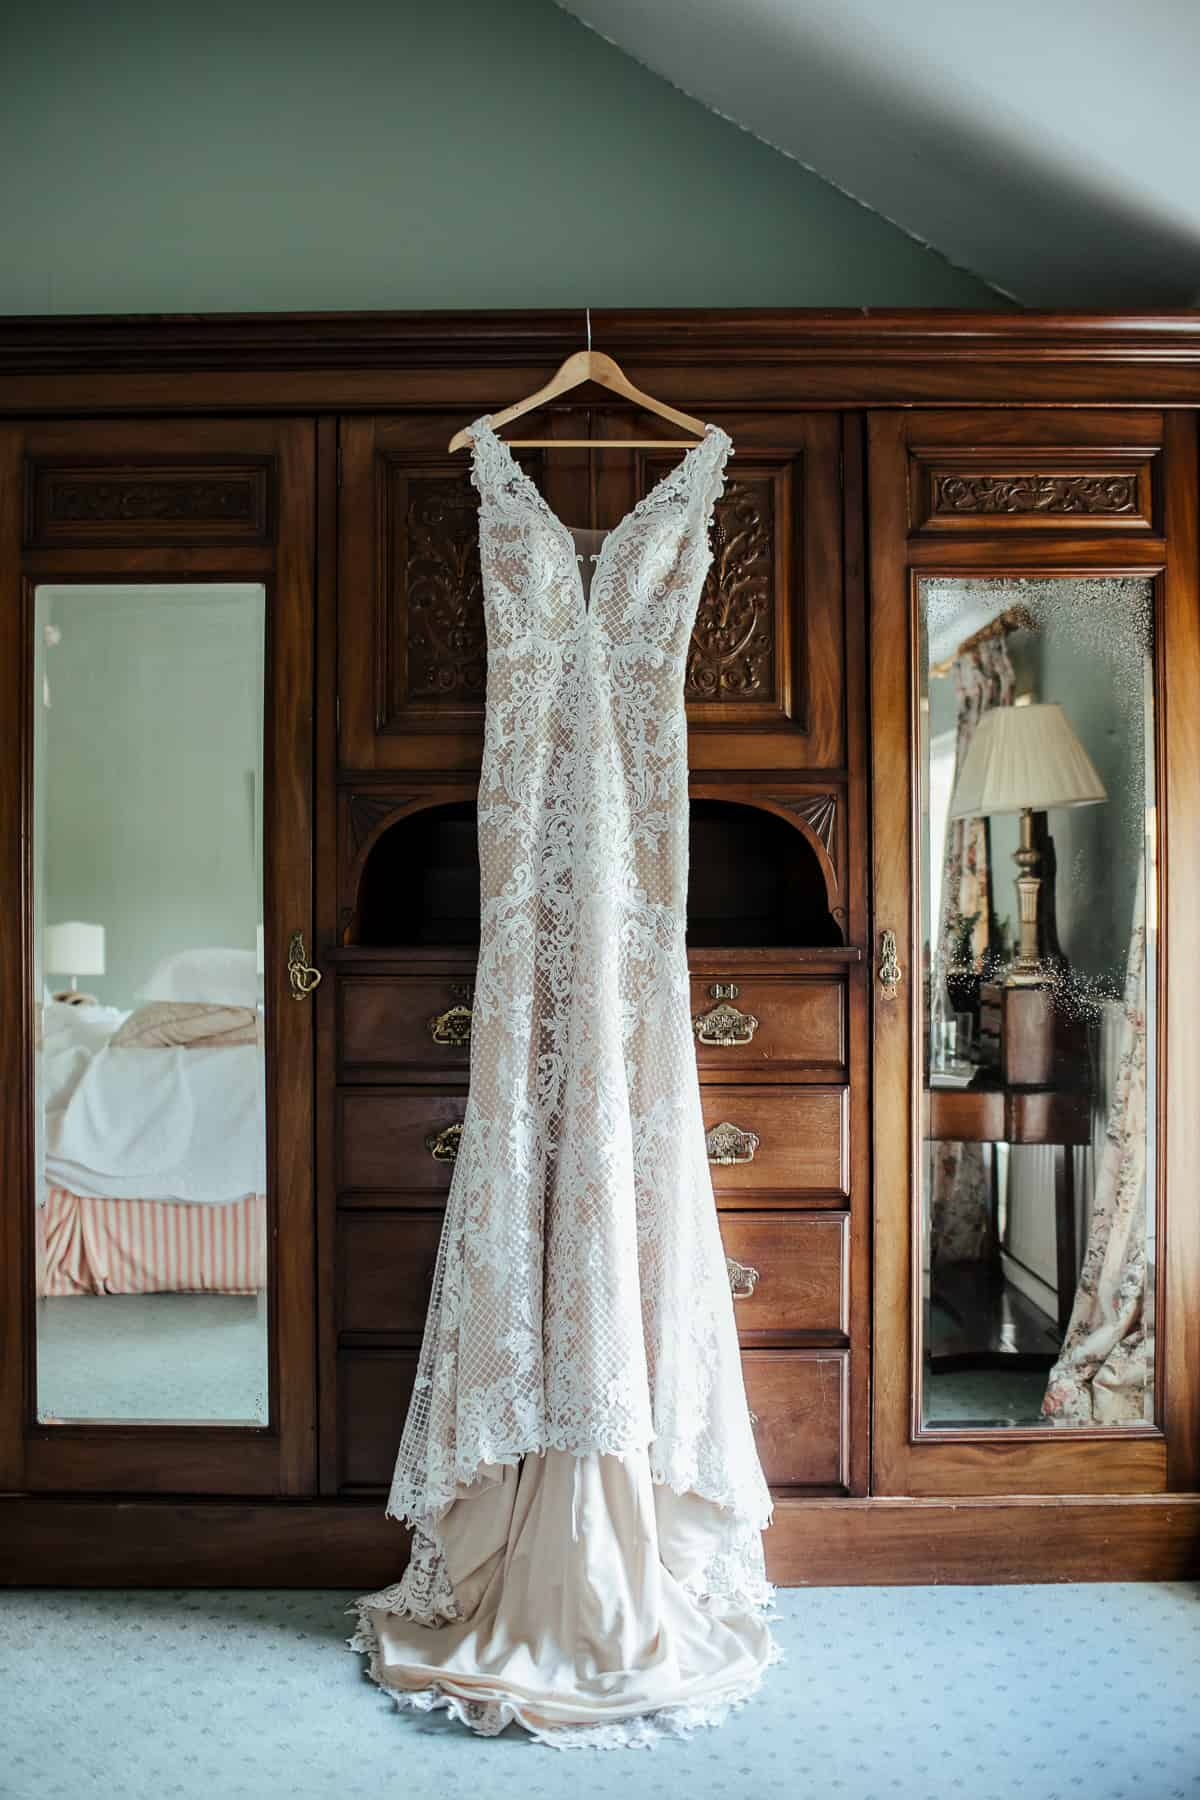 nude wedding dress with lace hanging on a vintage wardrobe